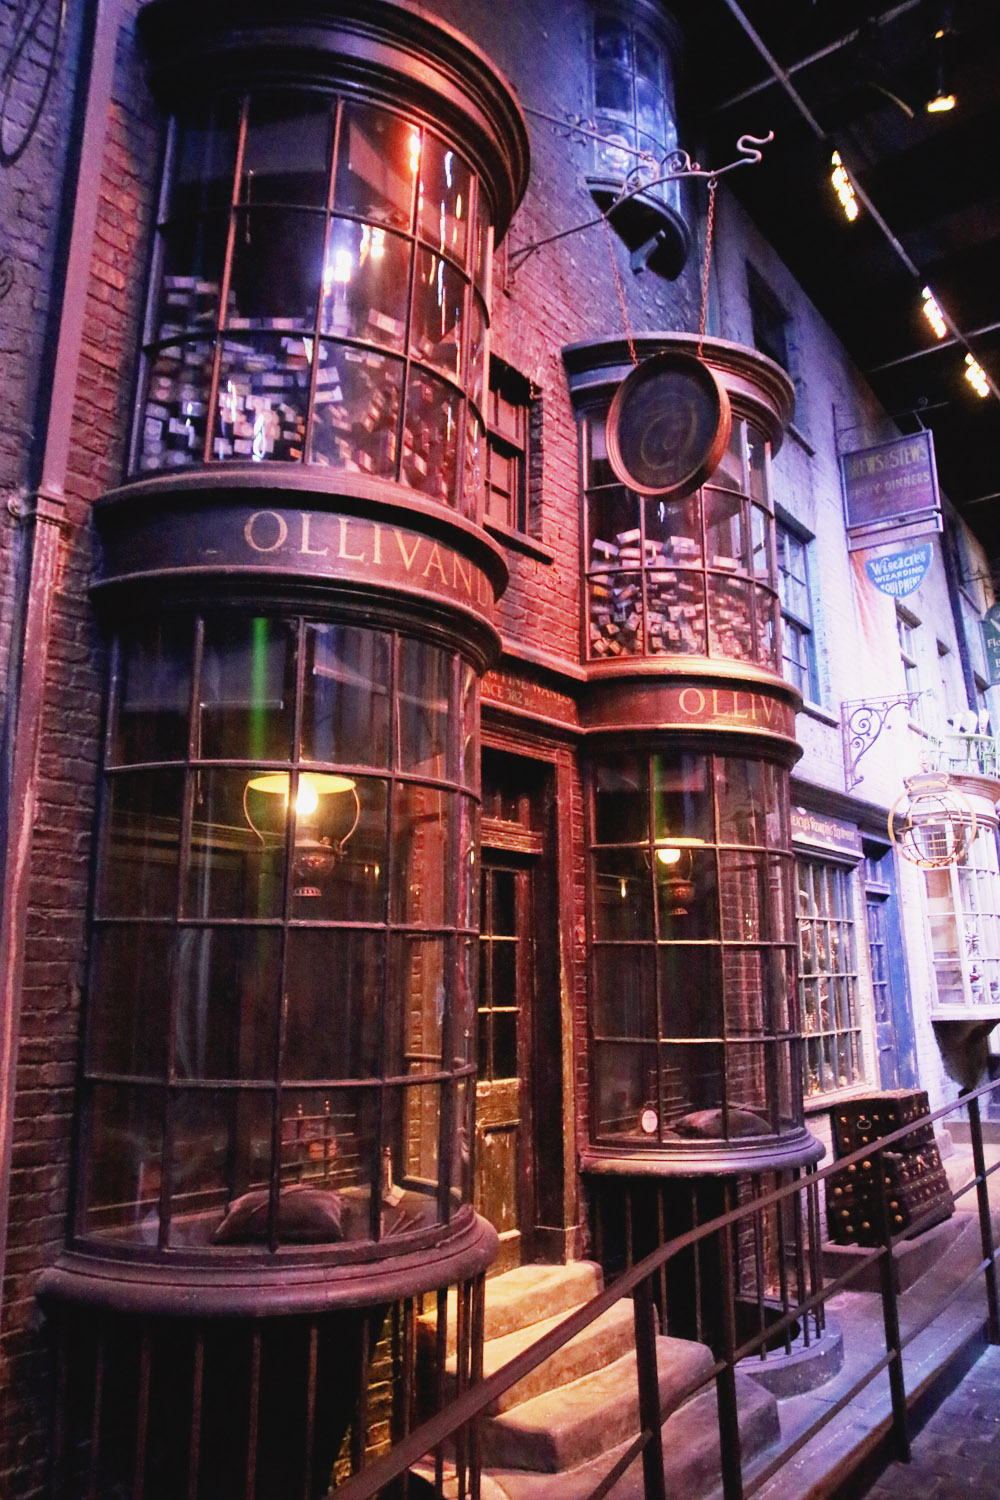 Harry Potter Warner Bros Studio Tour London Ollivanders